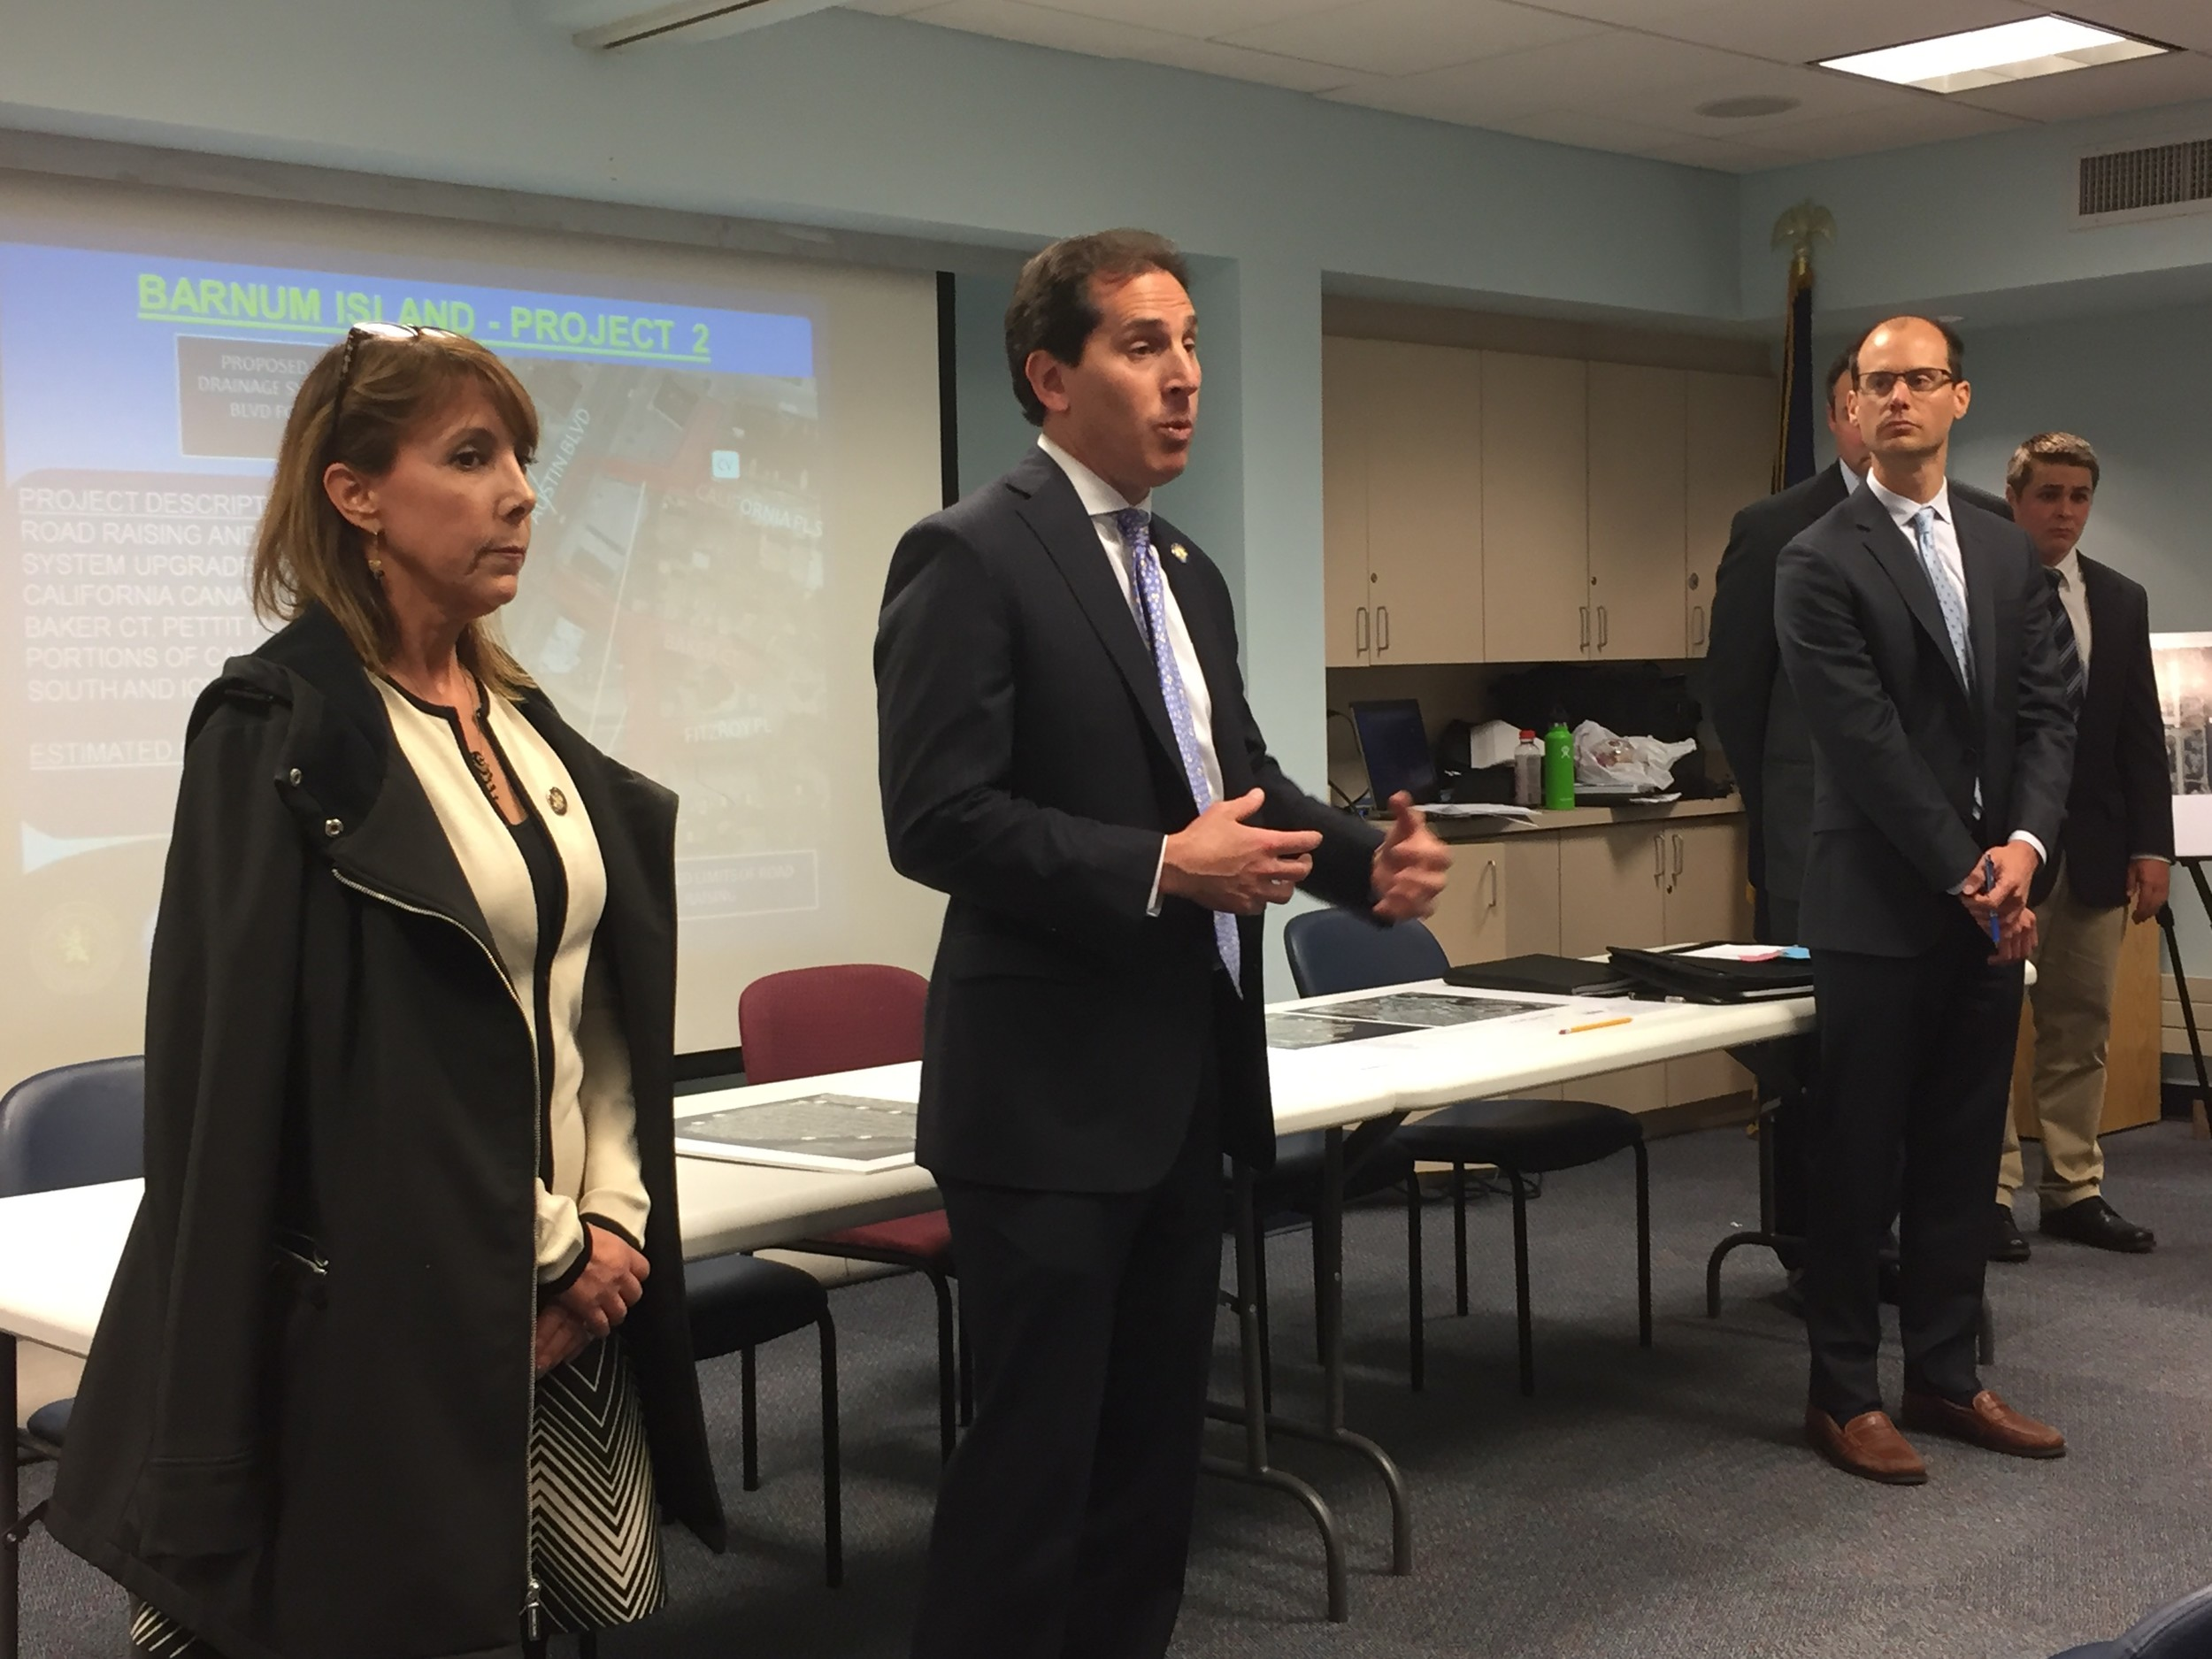 Assemblywoman Melissa Miller, State Sen. Todd Kaminsky and Sean Sallie, of the Nassau County Department of Public Works, attended the meeting. Legislator Denise Ford, not pictured, was also present.